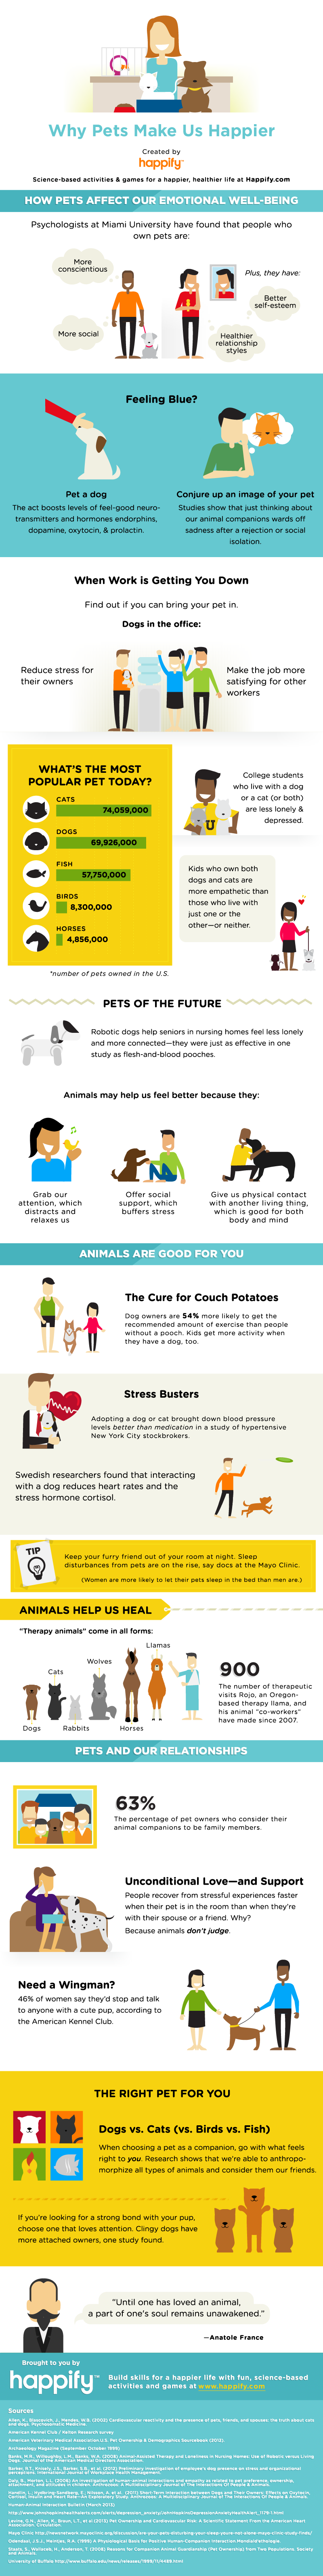 Owning A Pet Makes You Happier And Healthier: Here Is Why Infographic